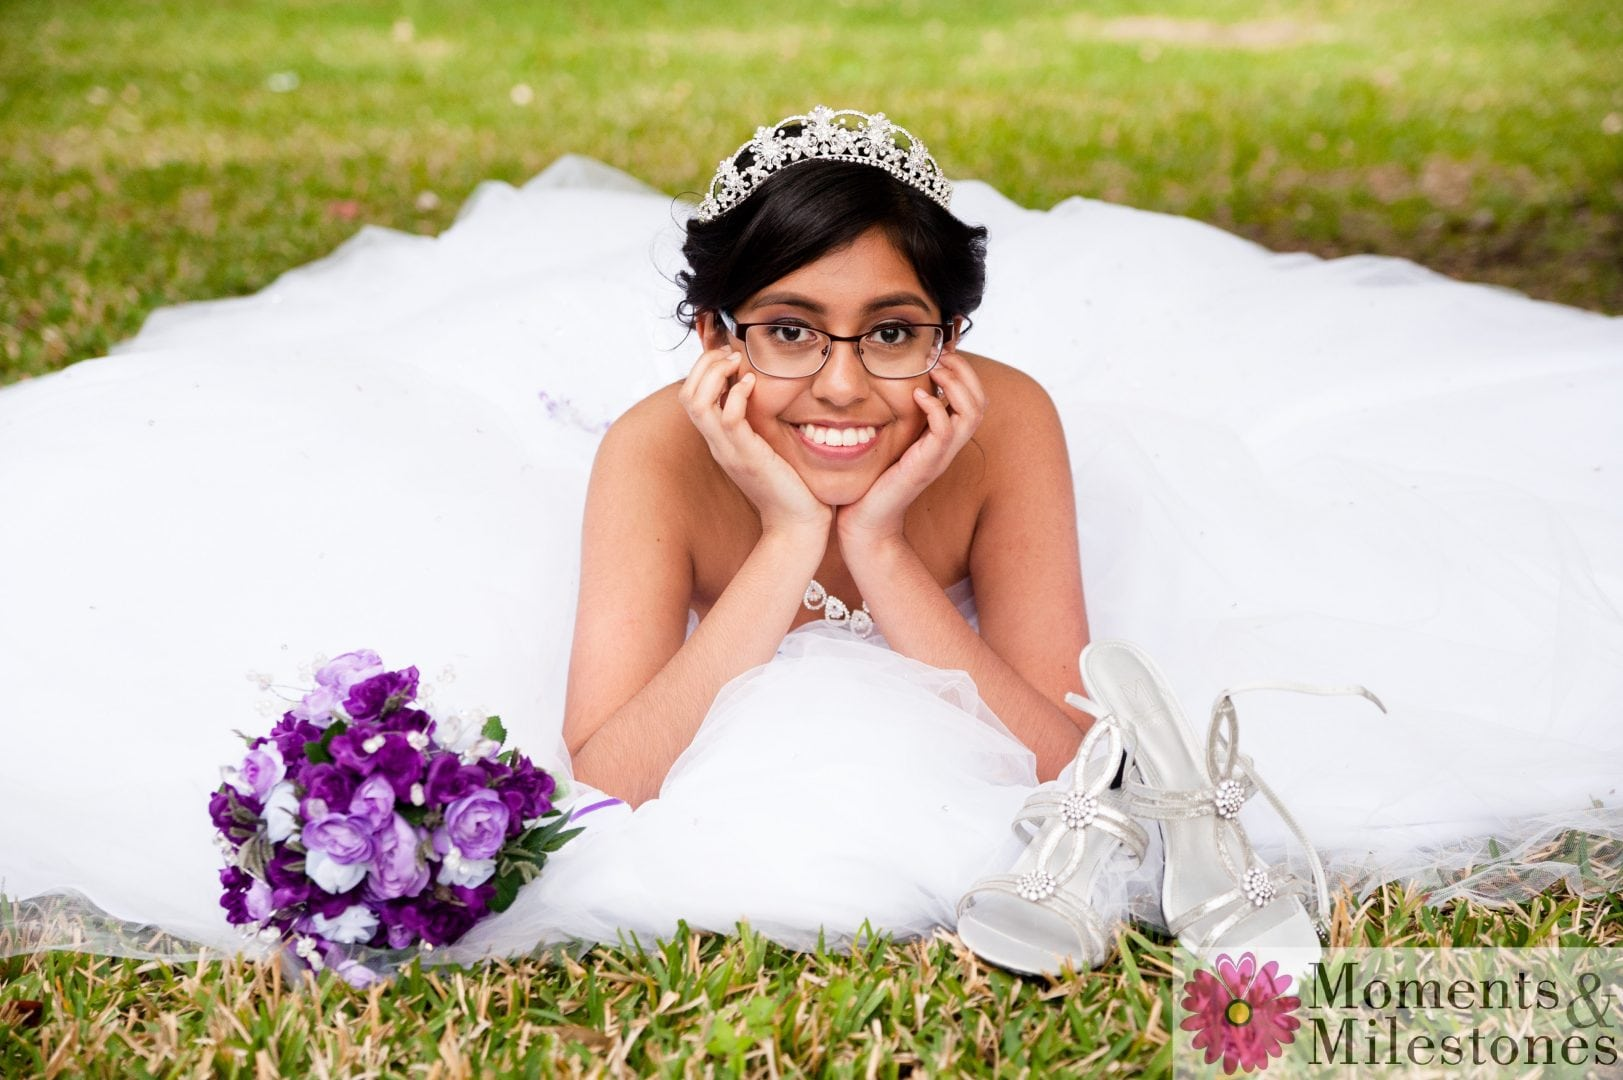 Laura's Quince Portrait Photography